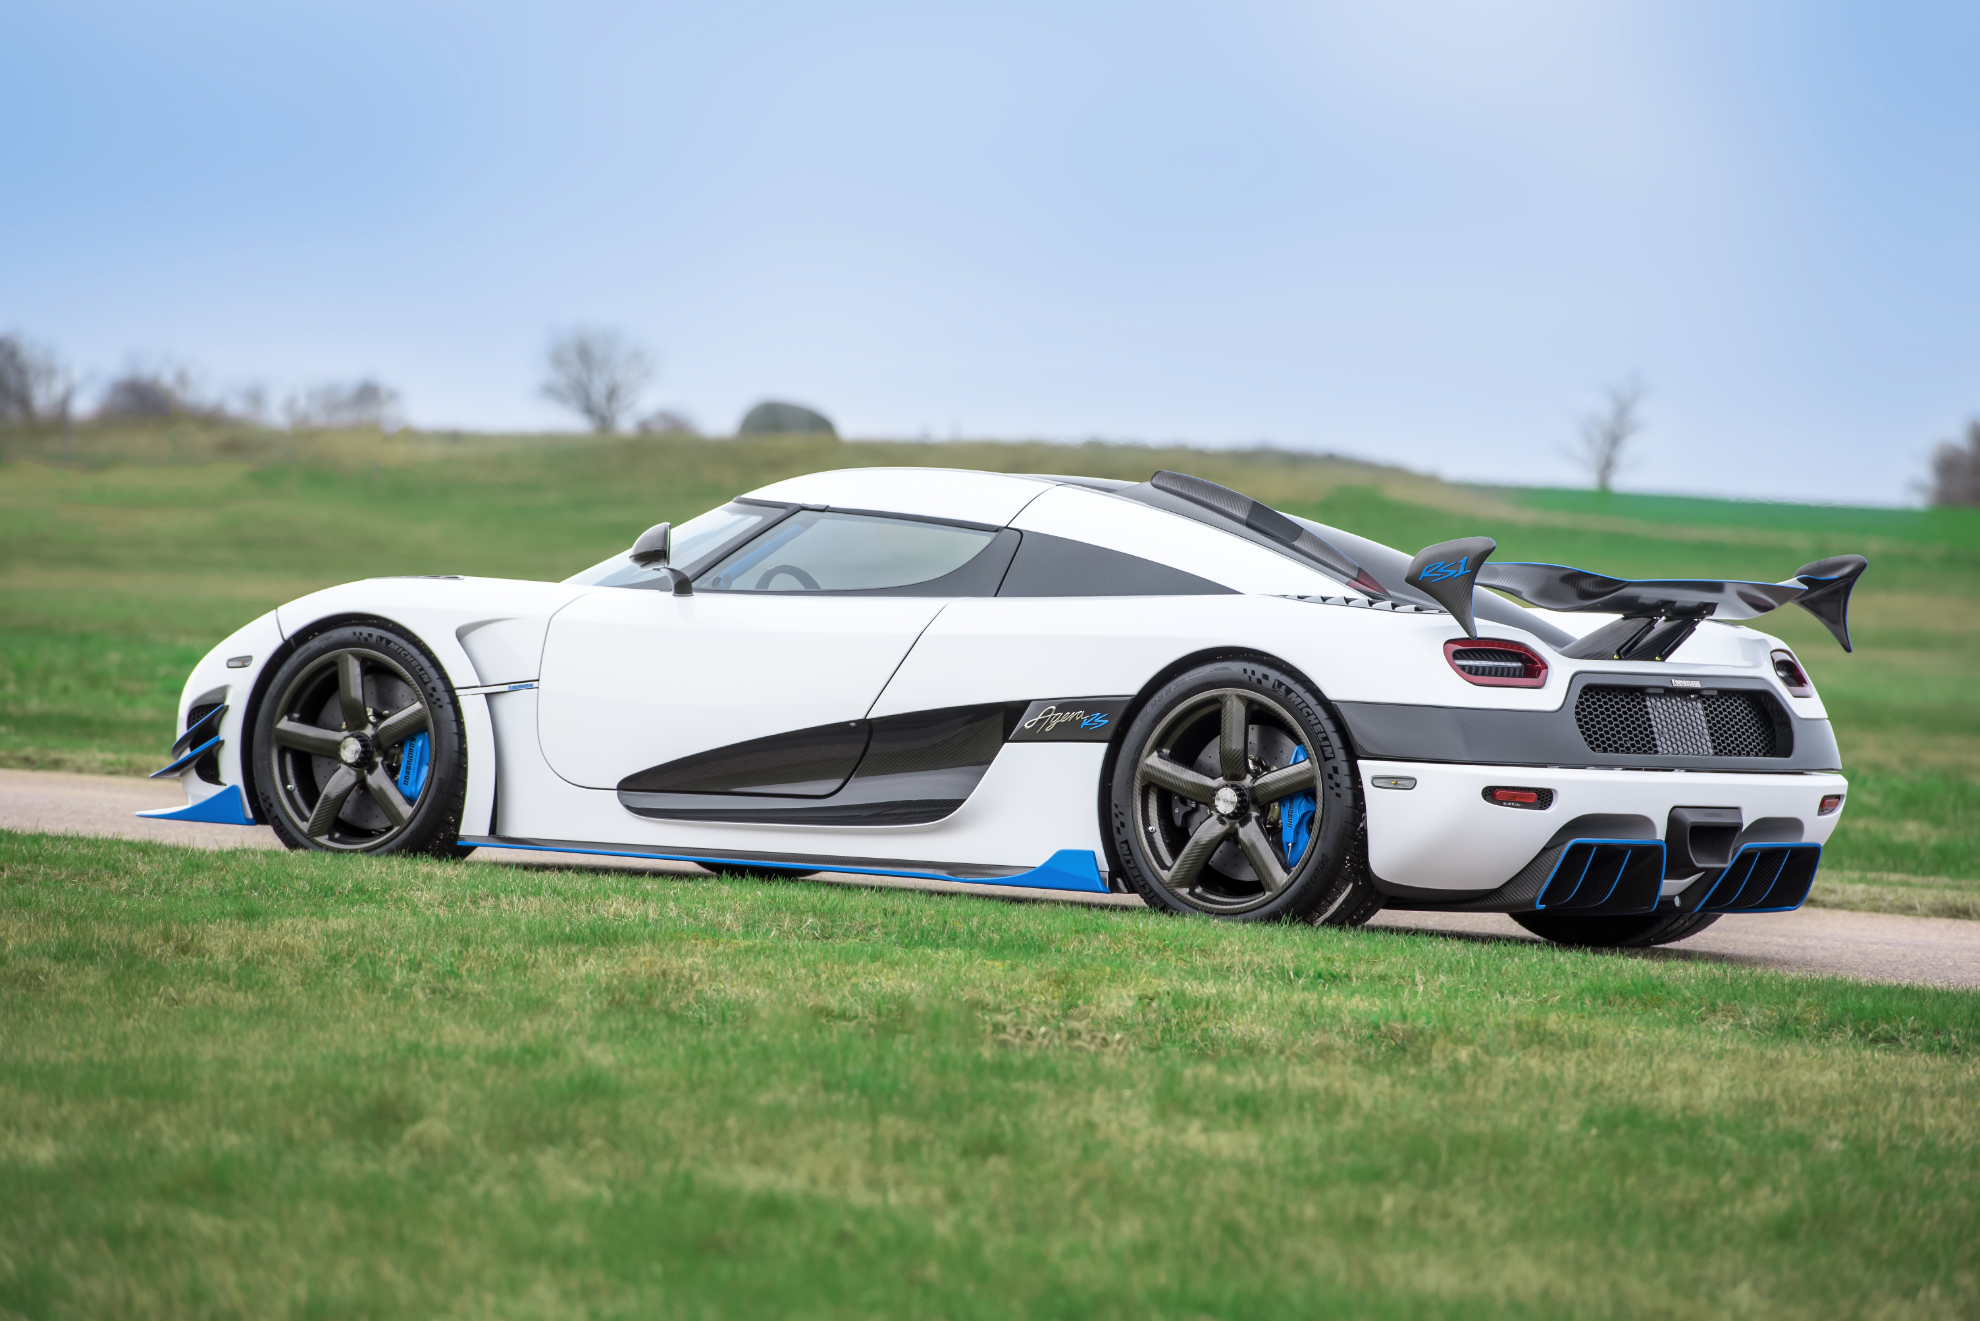 koenigsegg confirms an agera rs crash on its test track nobody was injured autoevolution. Black Bedroom Furniture Sets. Home Design Ideas